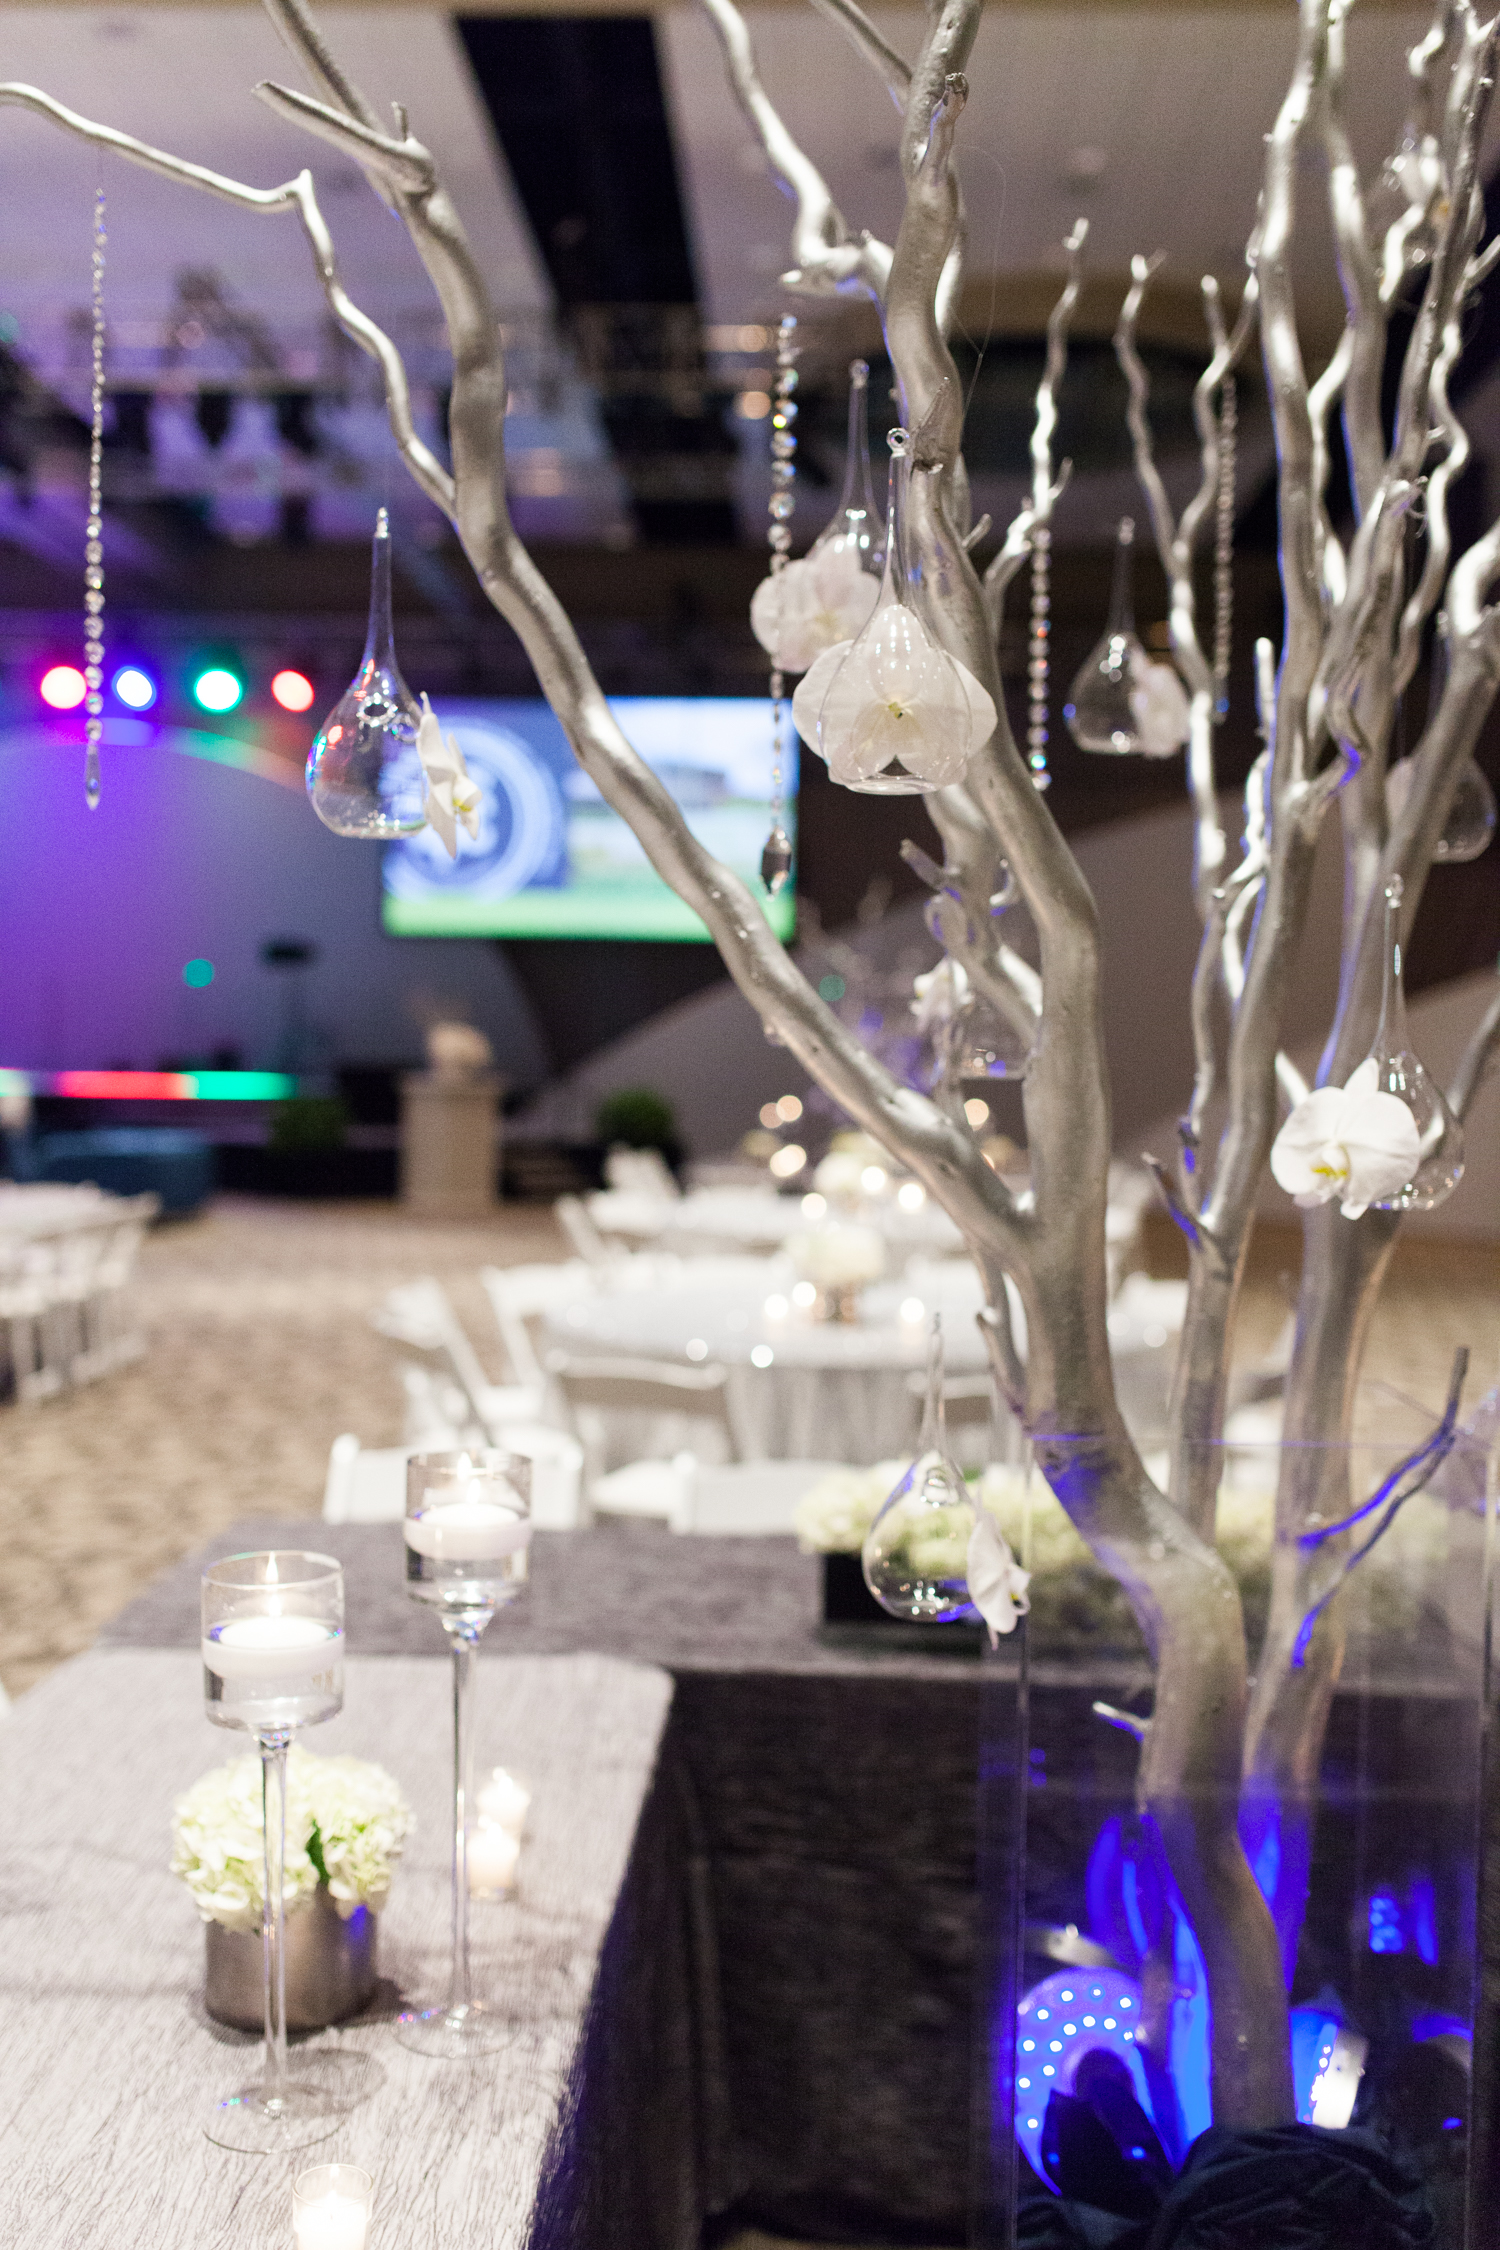 Grand Rapids, Michigan Amway Corporate Silver Tree Centerpiece with Globs